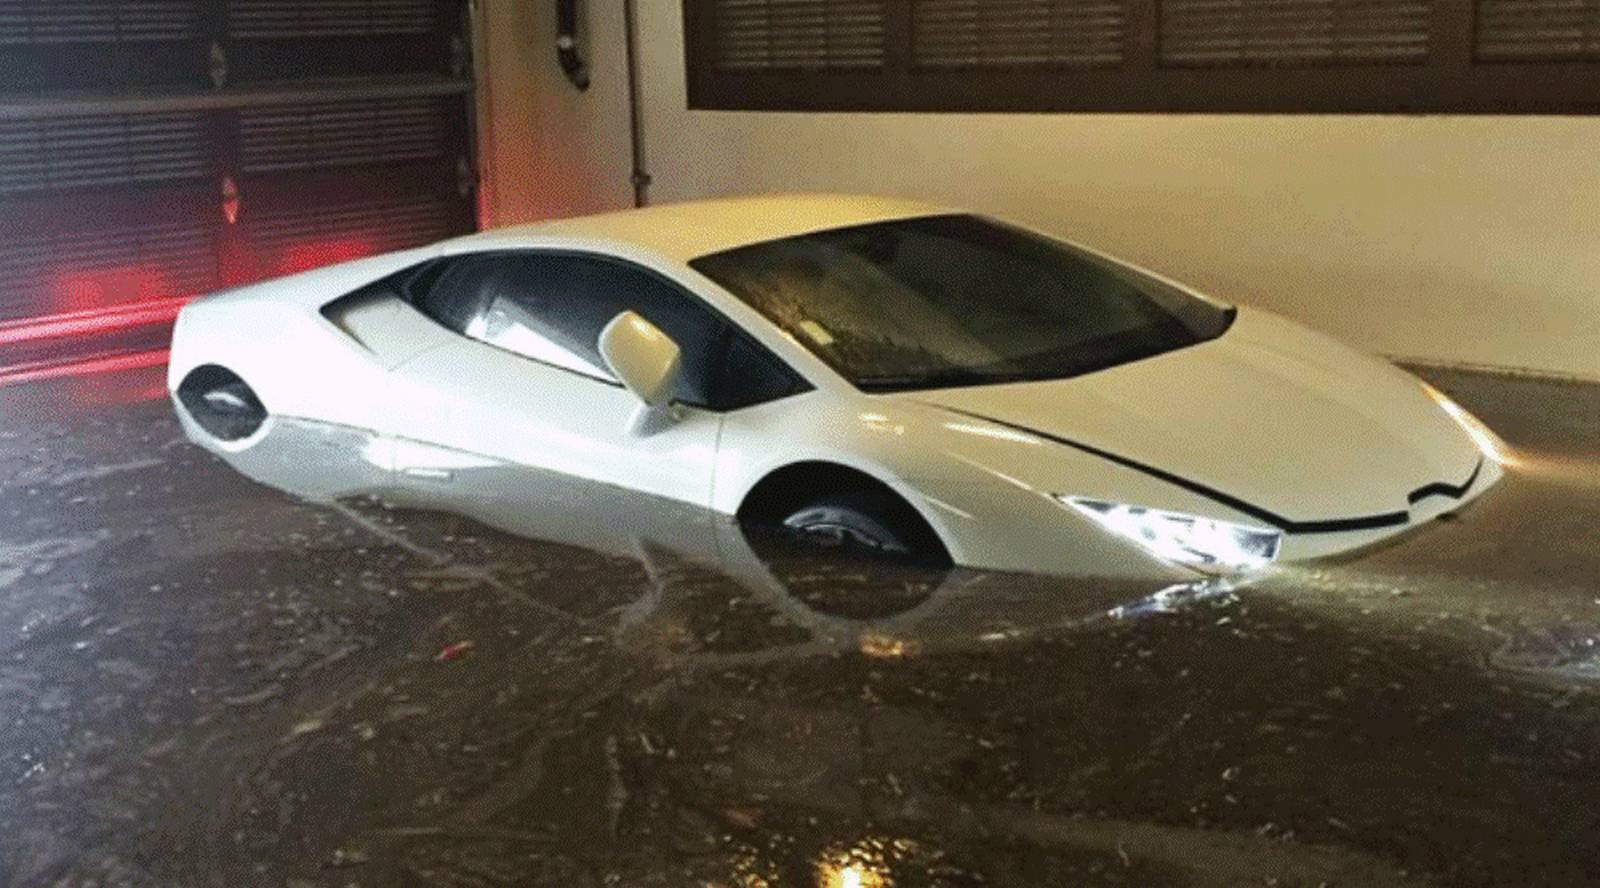 3 Day Old Lamborghini Huracan Destroyed By Floods In San